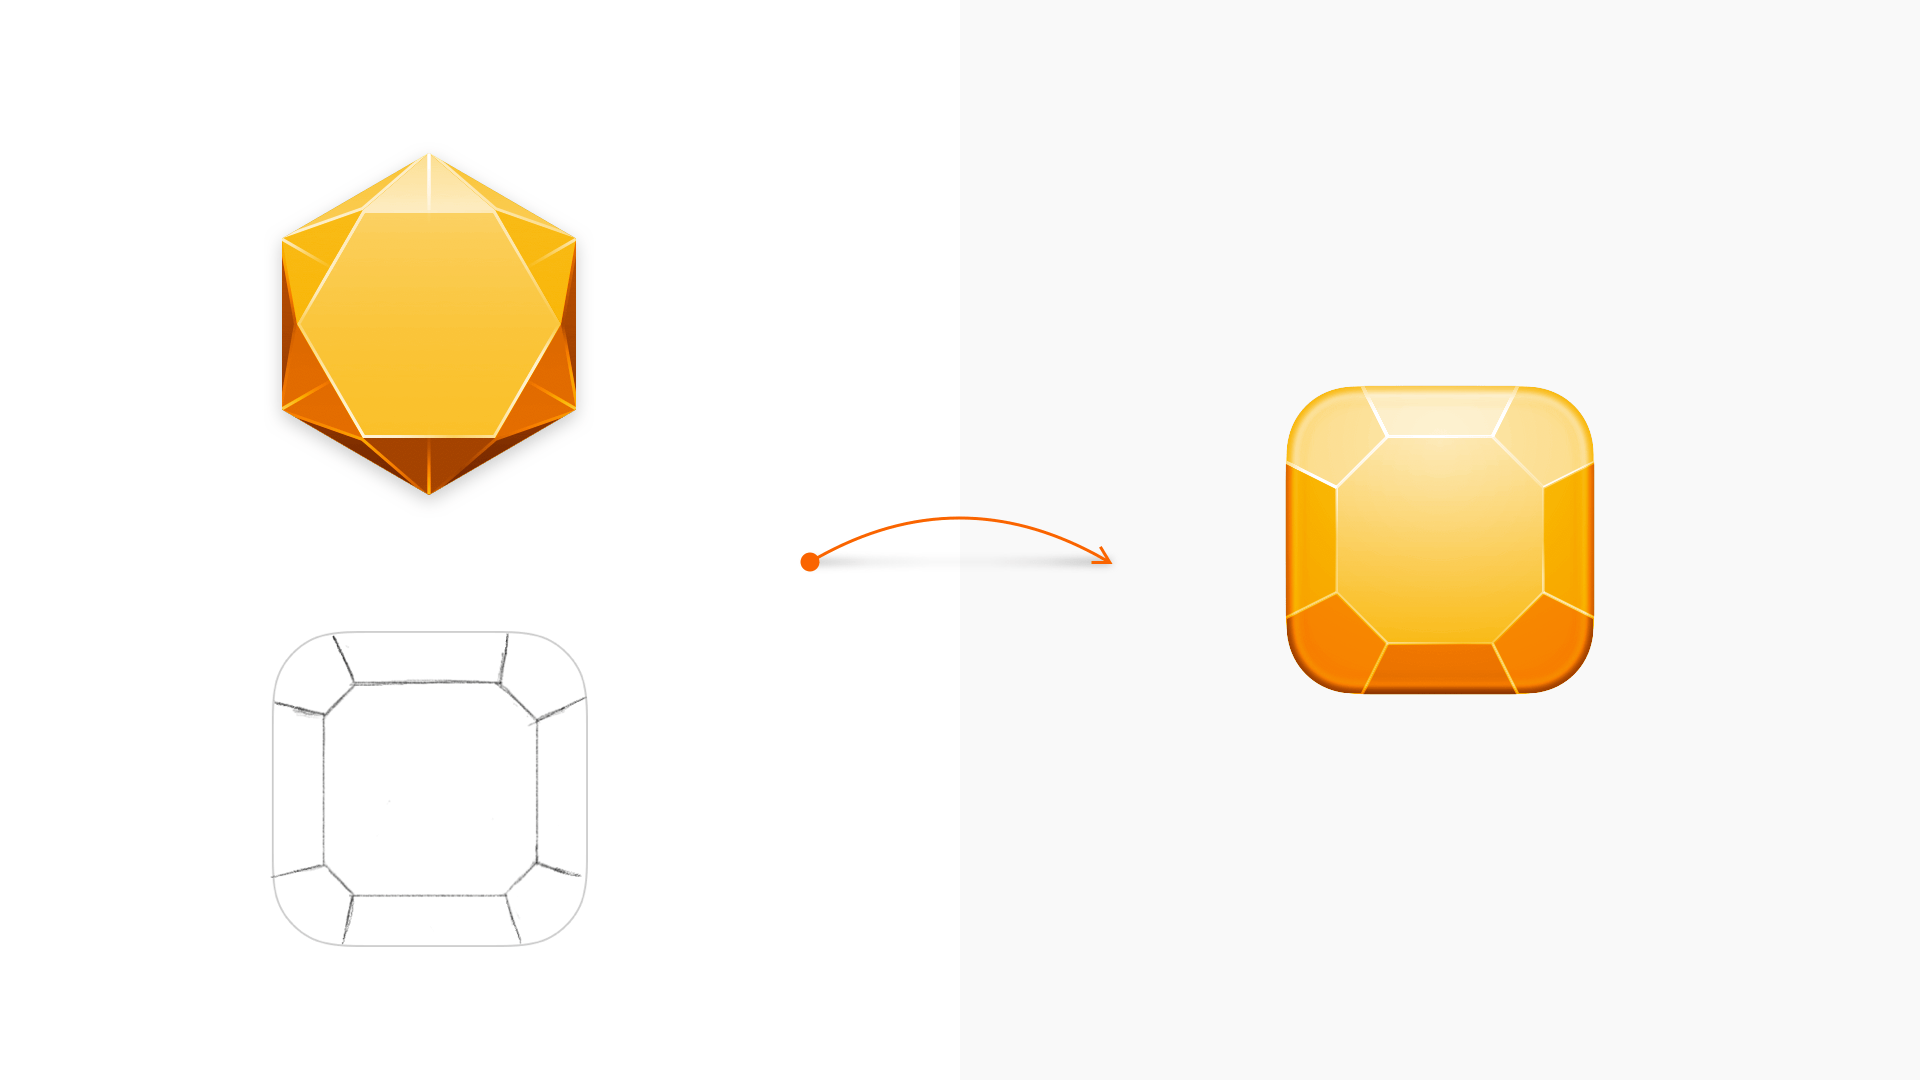 An imagine showing a top-down reimagining of the Sketch diamond in an early drawing and a vector version of that drawing.